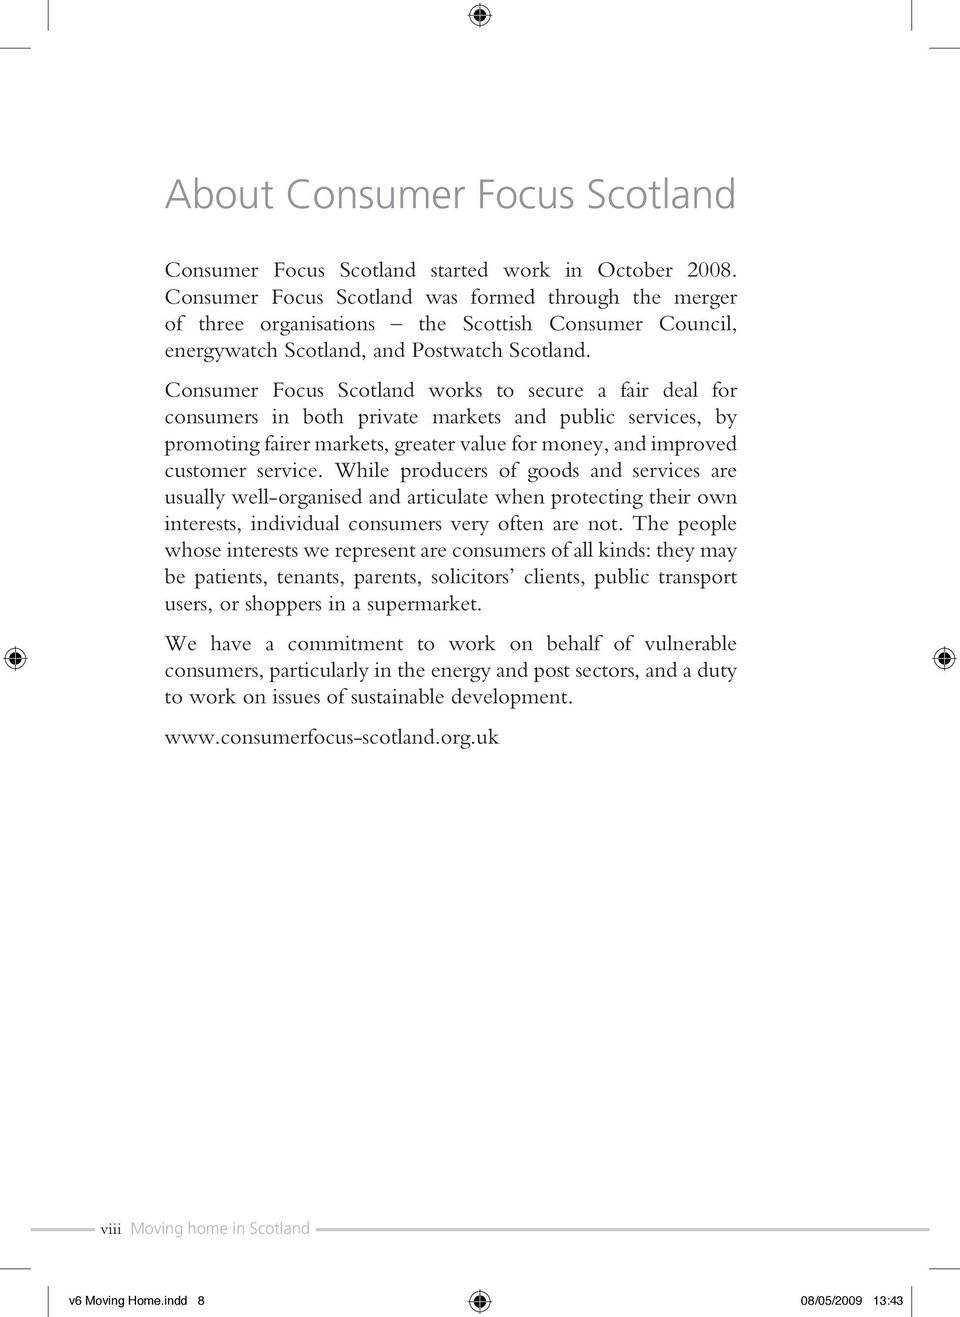 Consumer Focus Scotland works to secure a fair deal for consumers in both private markets and public services, by promoting fairer markets, greater value for money, and improved customer service.